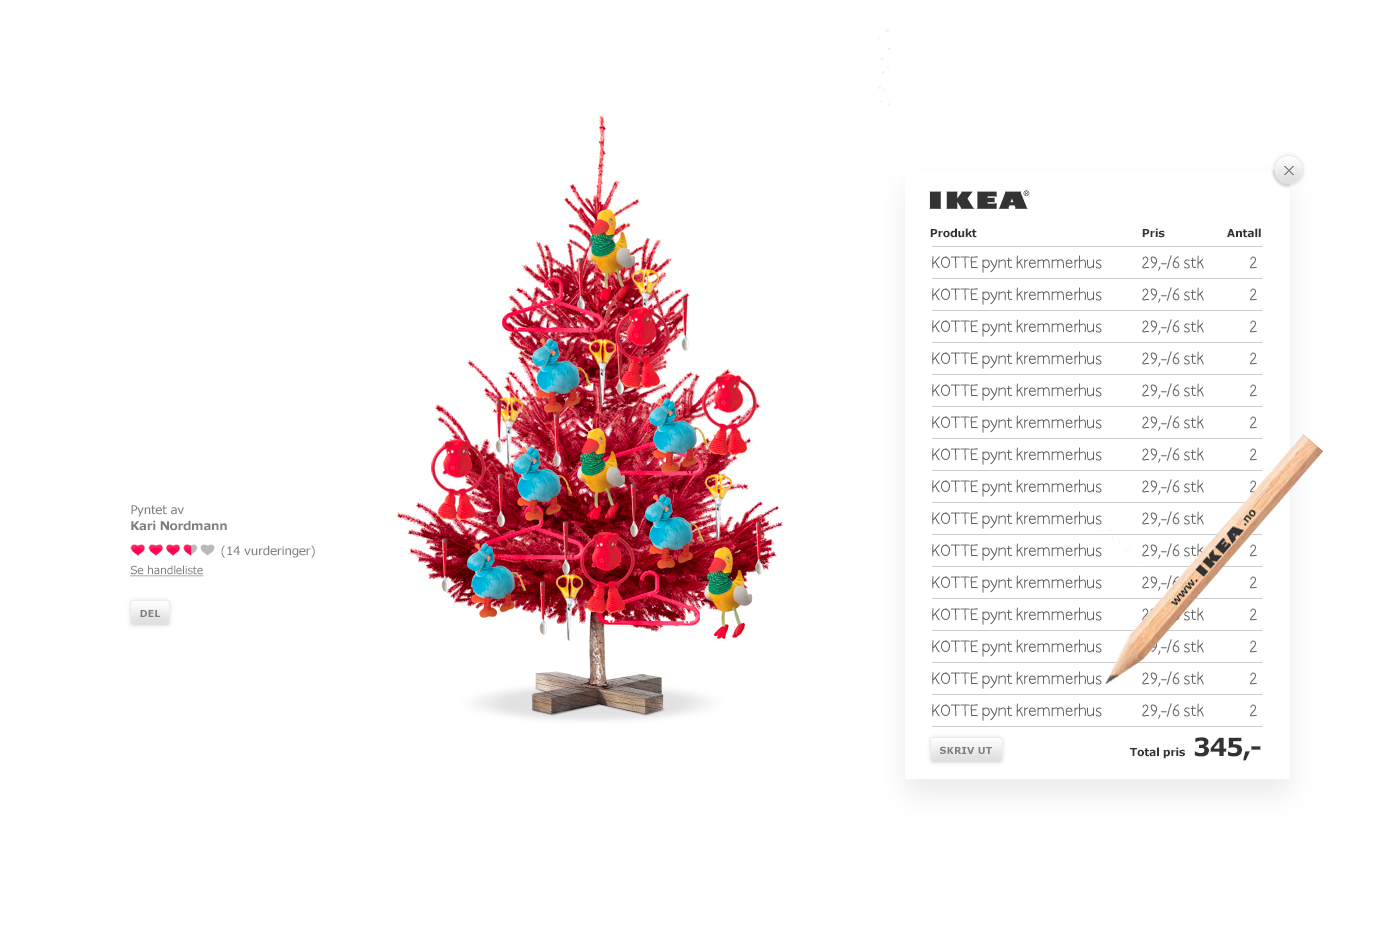 IKEA Christmas Campaign (2009) on Behance